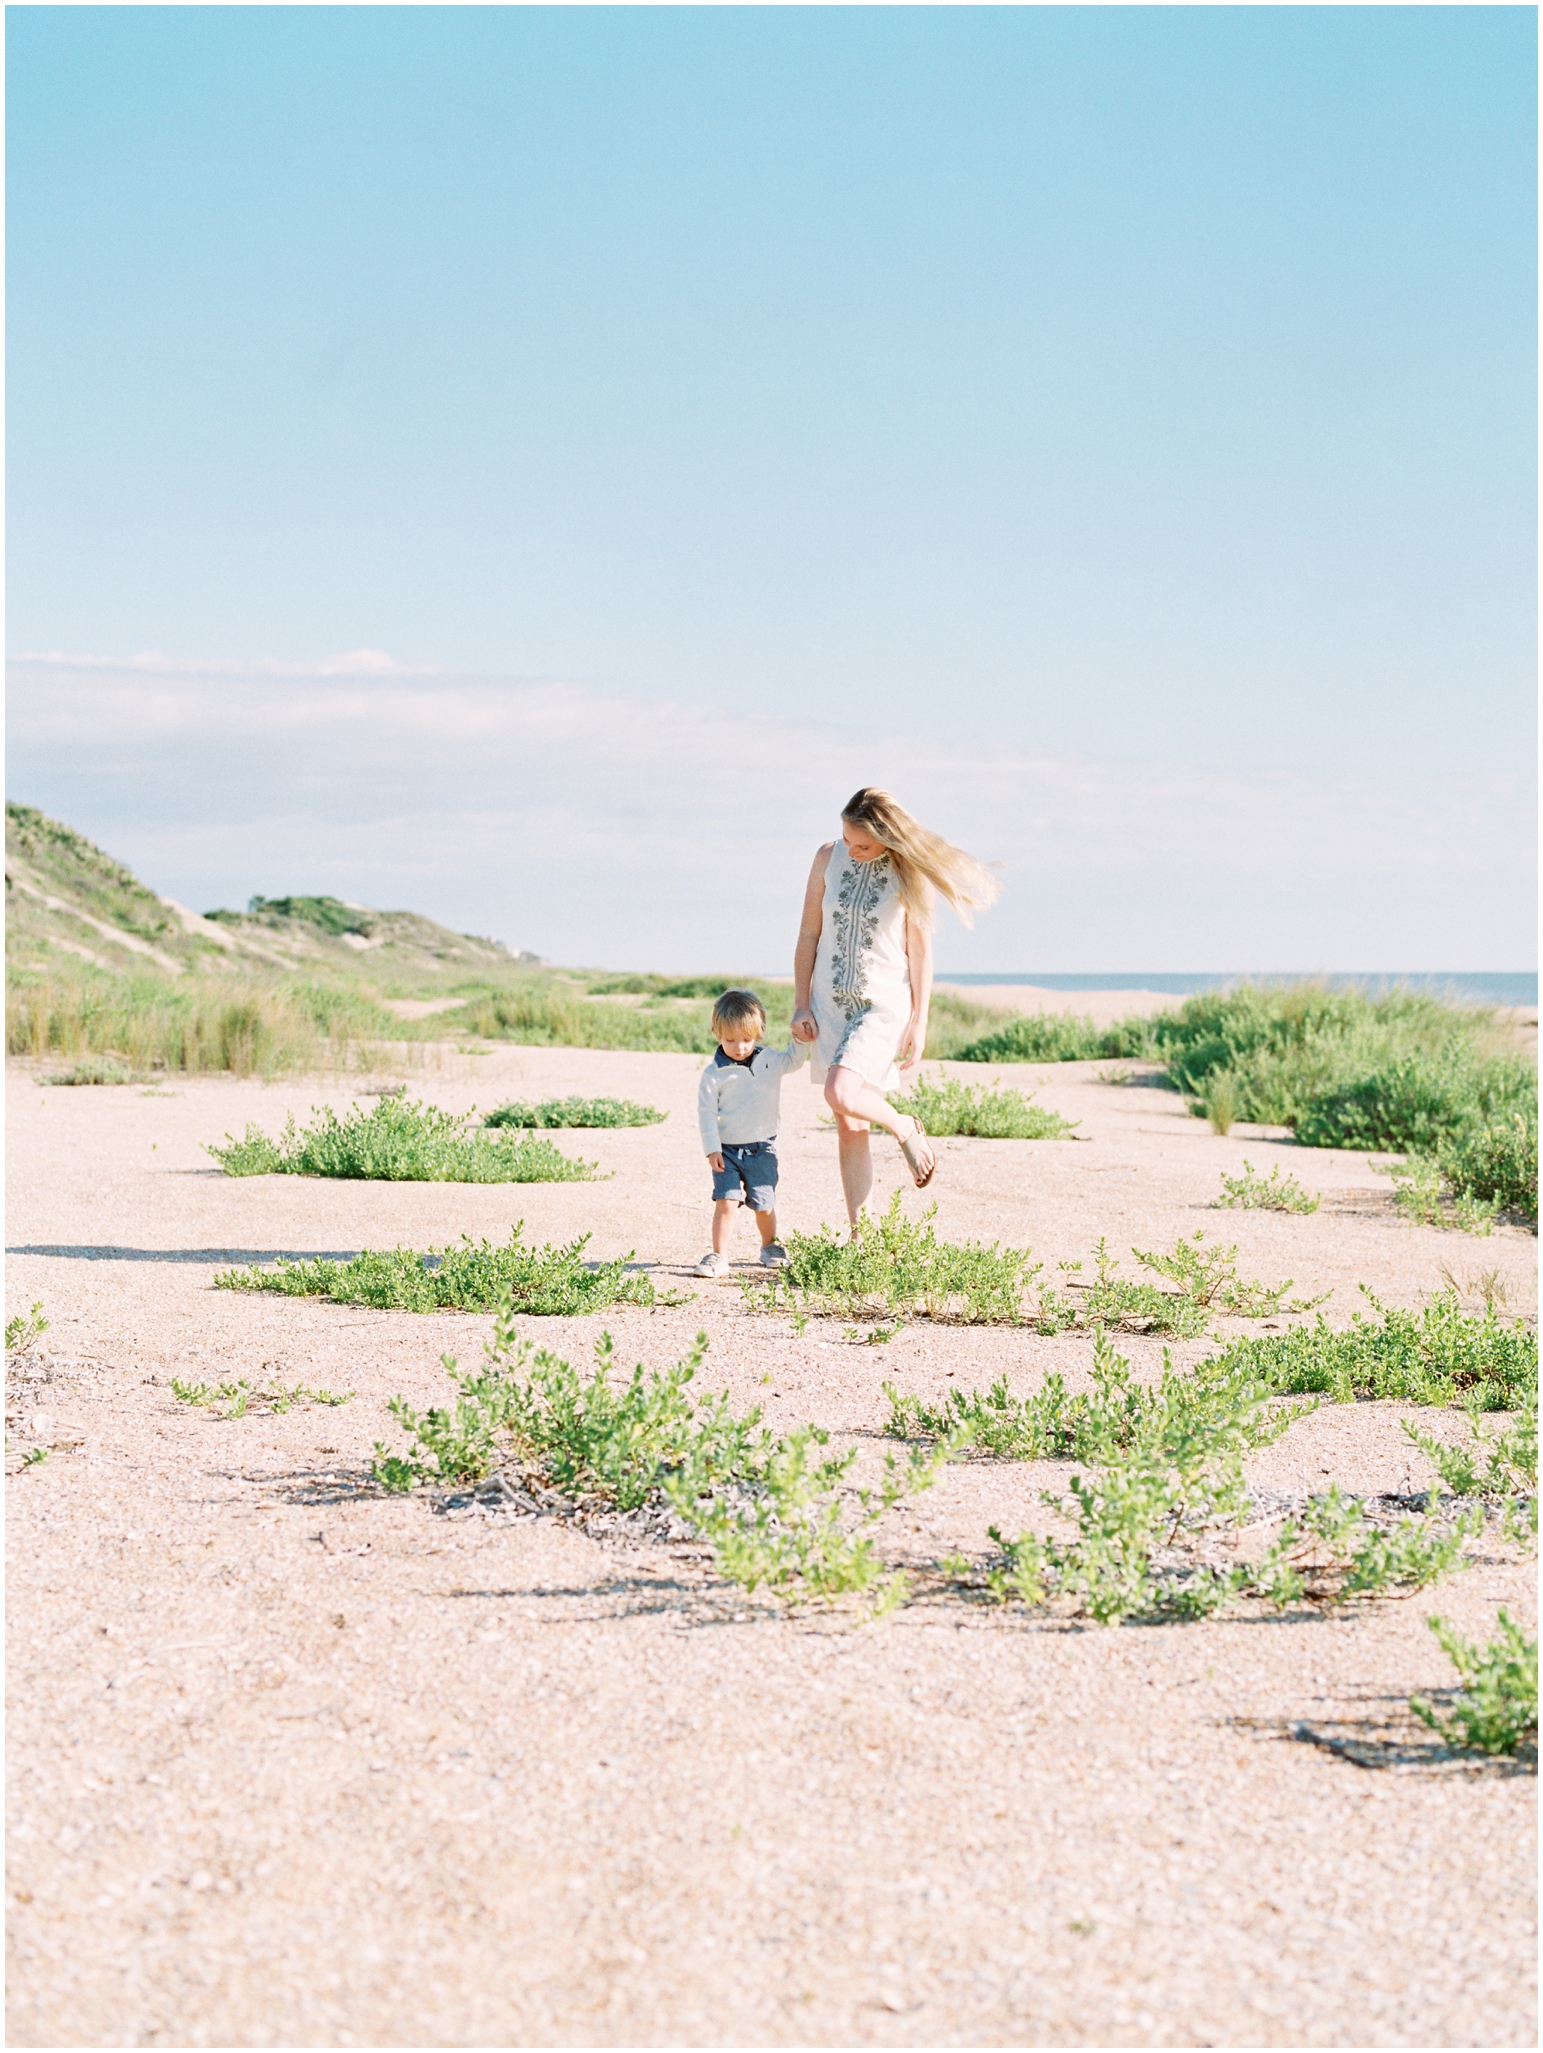 Lisa Silva Photography- Jacksonville, St. Augustine, Amelia Island, Ponte Vedra Beach, North East Florida Fine Art Film Photographer- Mommy and Me Lifestyle Session in Ponte Vedra Beach_0004.jpg